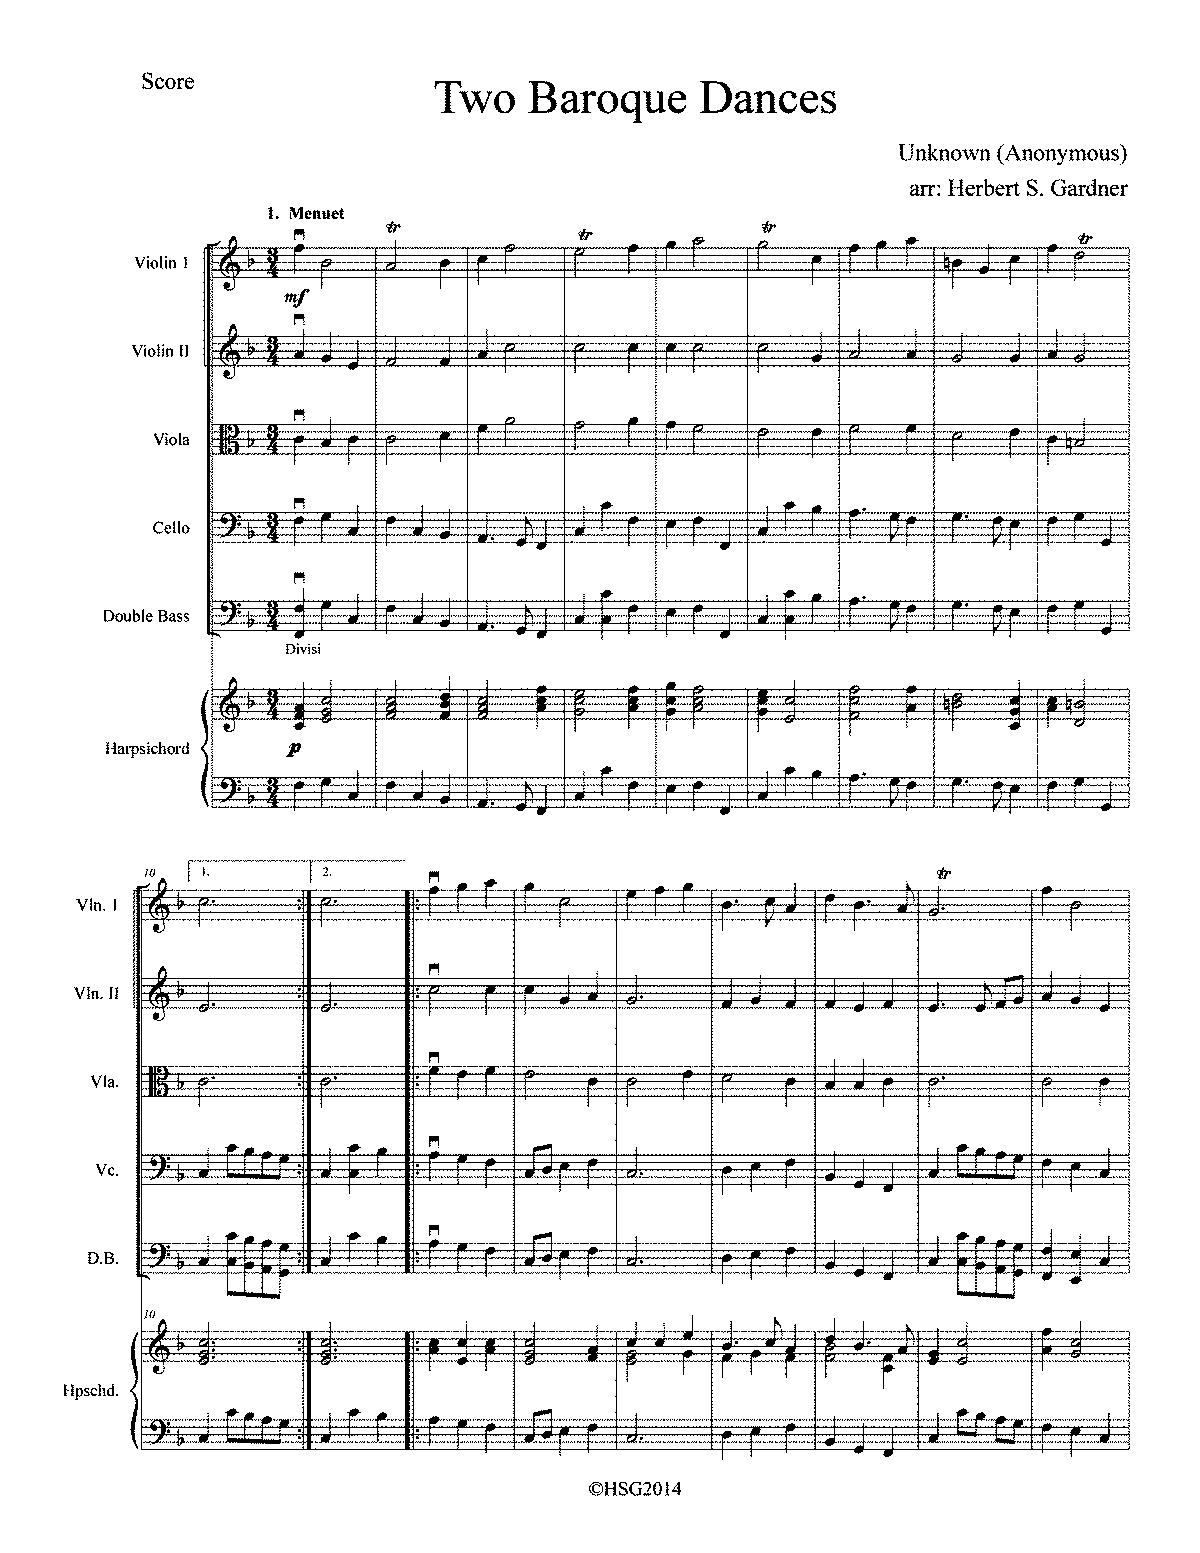 PMLP438636-Two Baroque Dances-Score.pdf